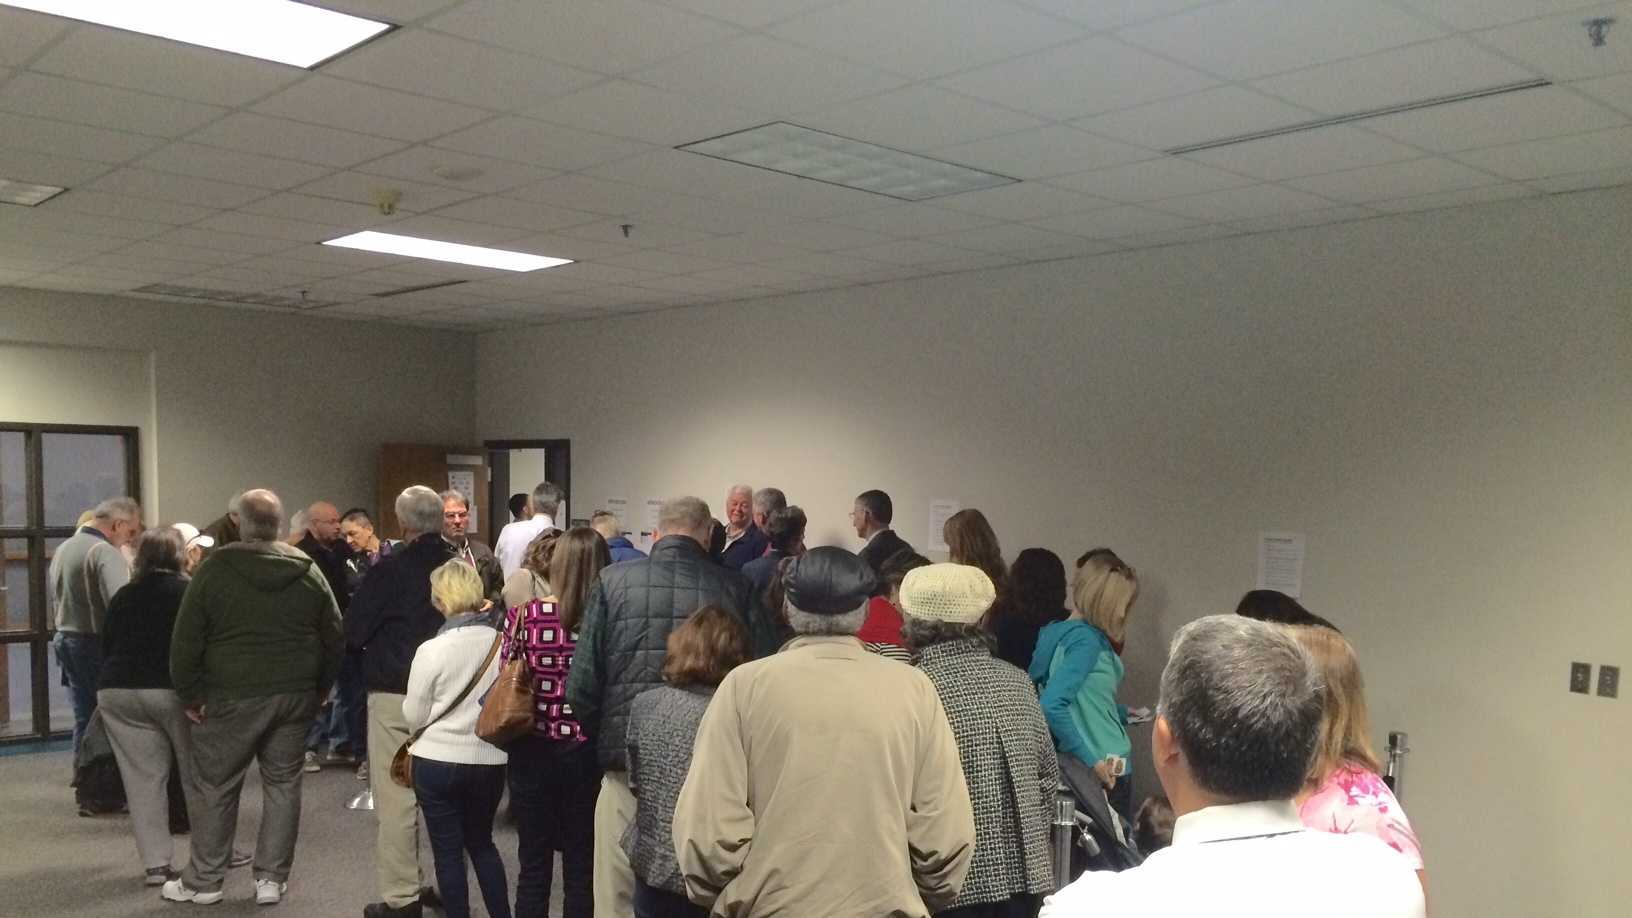 Long lines in Greenville County to cast an absentee vote.